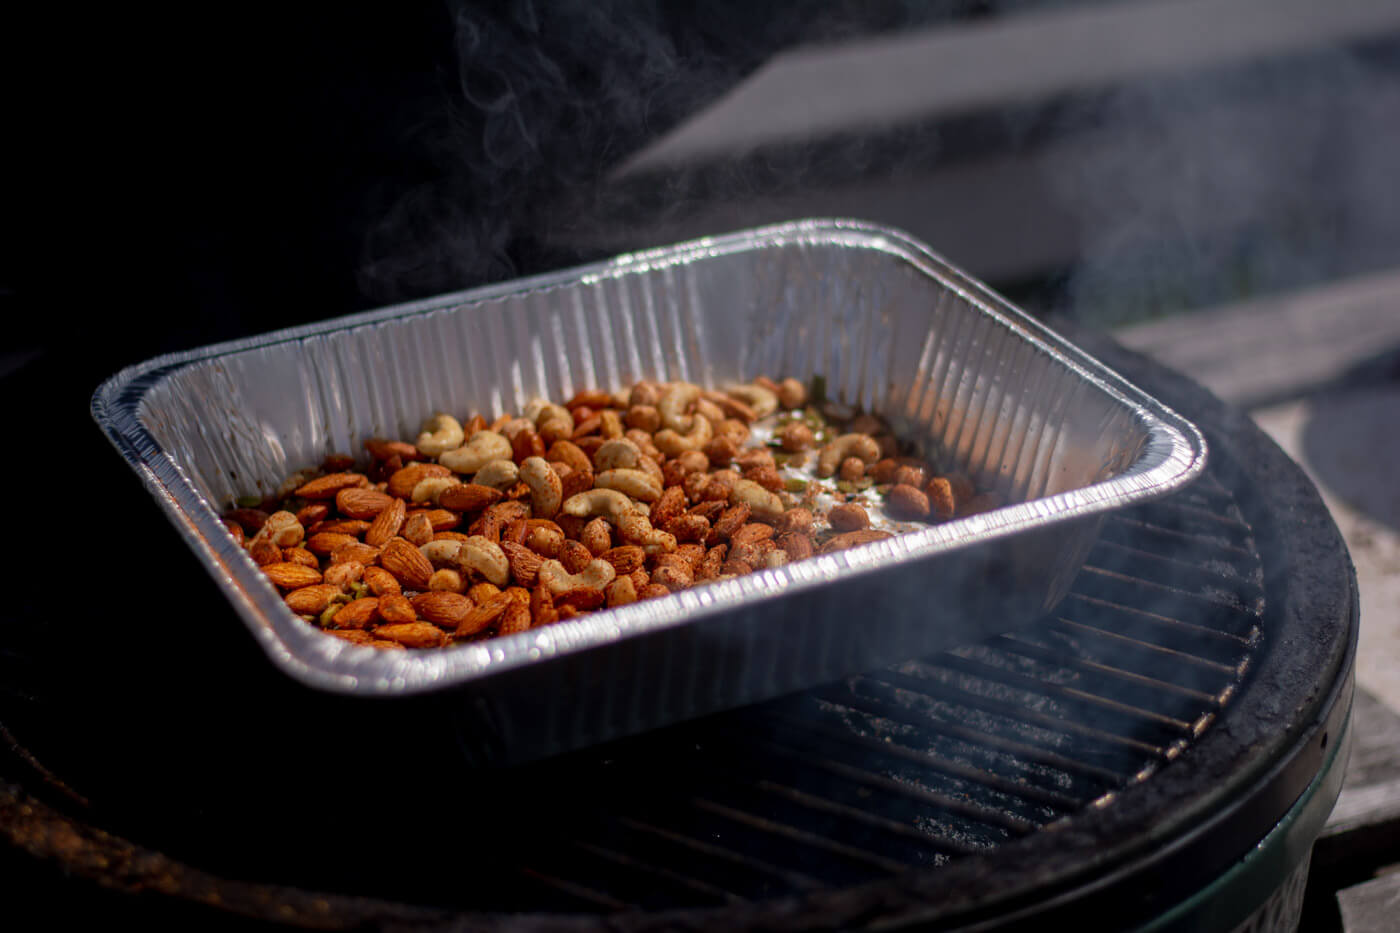 Hickory Smoke Dancing around! Learn How to Smoke Nuts on the Big Green Egg